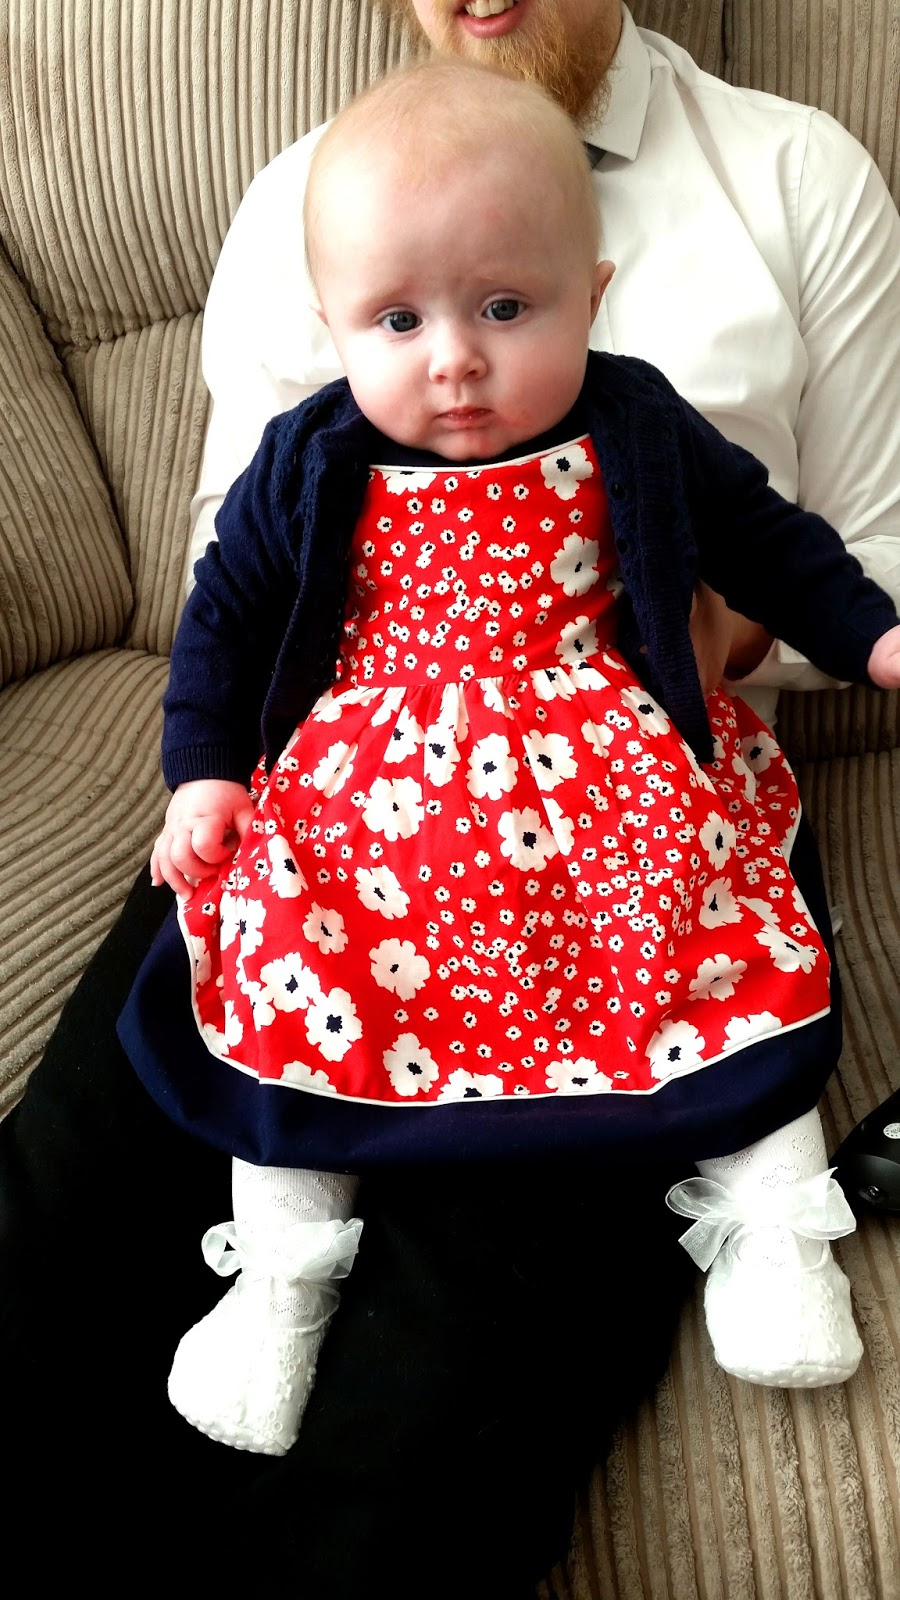 spring baby clothes, spring baby clothing, spring style, baby floral print